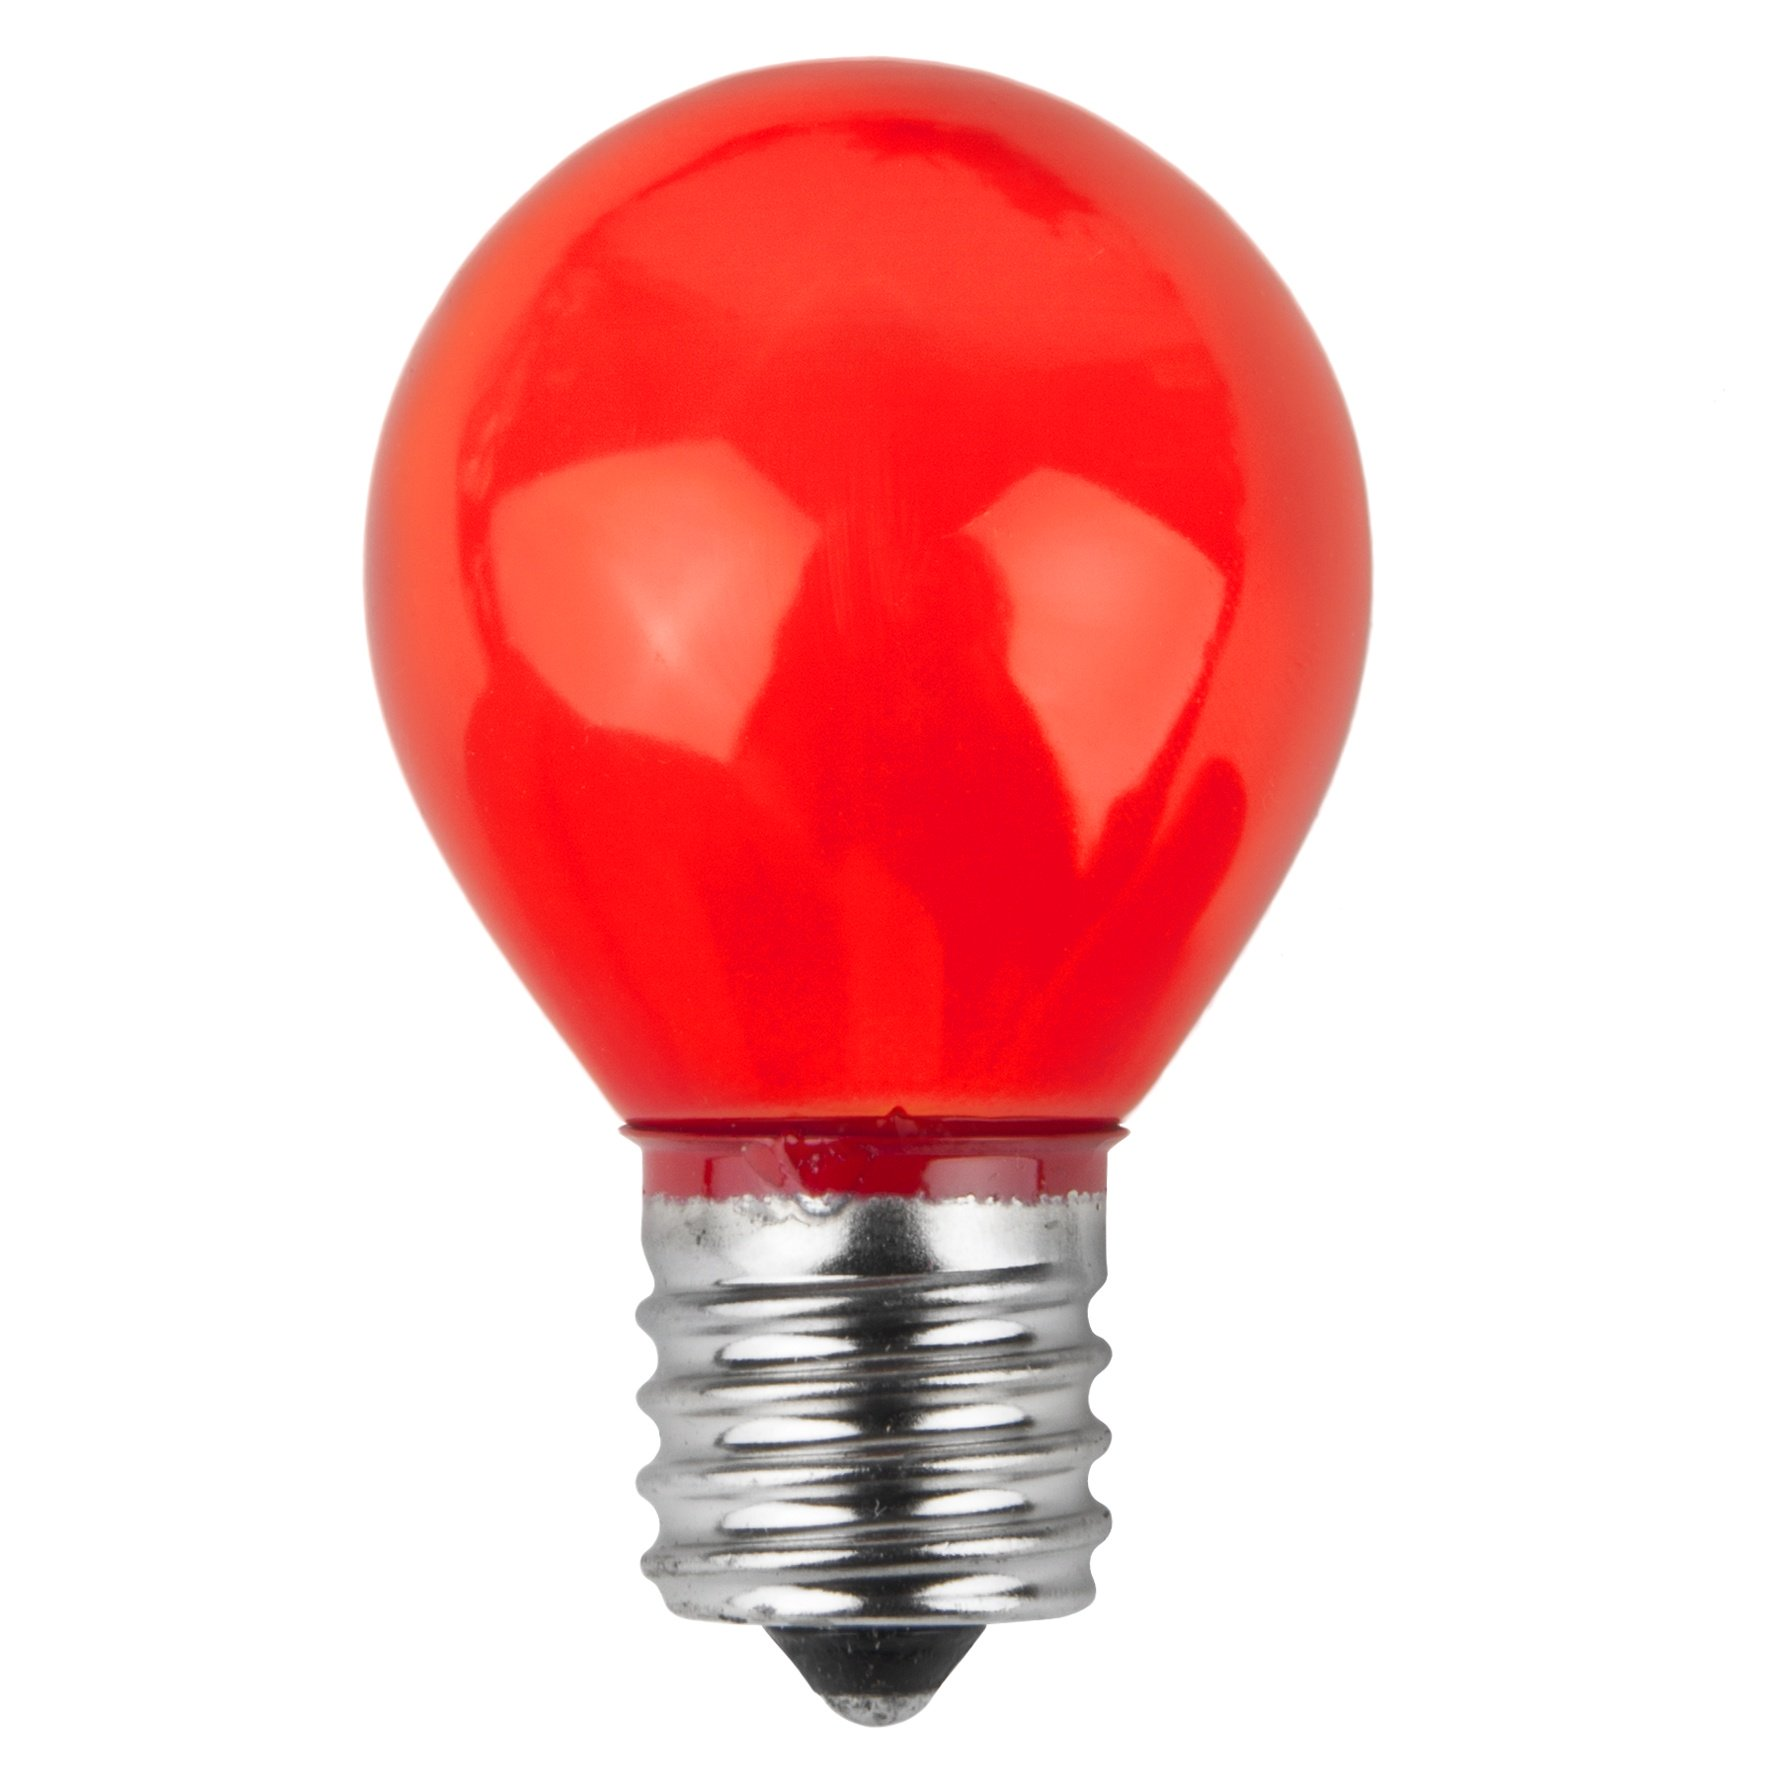 E17 Patio And Party Light Bulbs S11 Opaque Red 10 Watt Replacement Bulbs